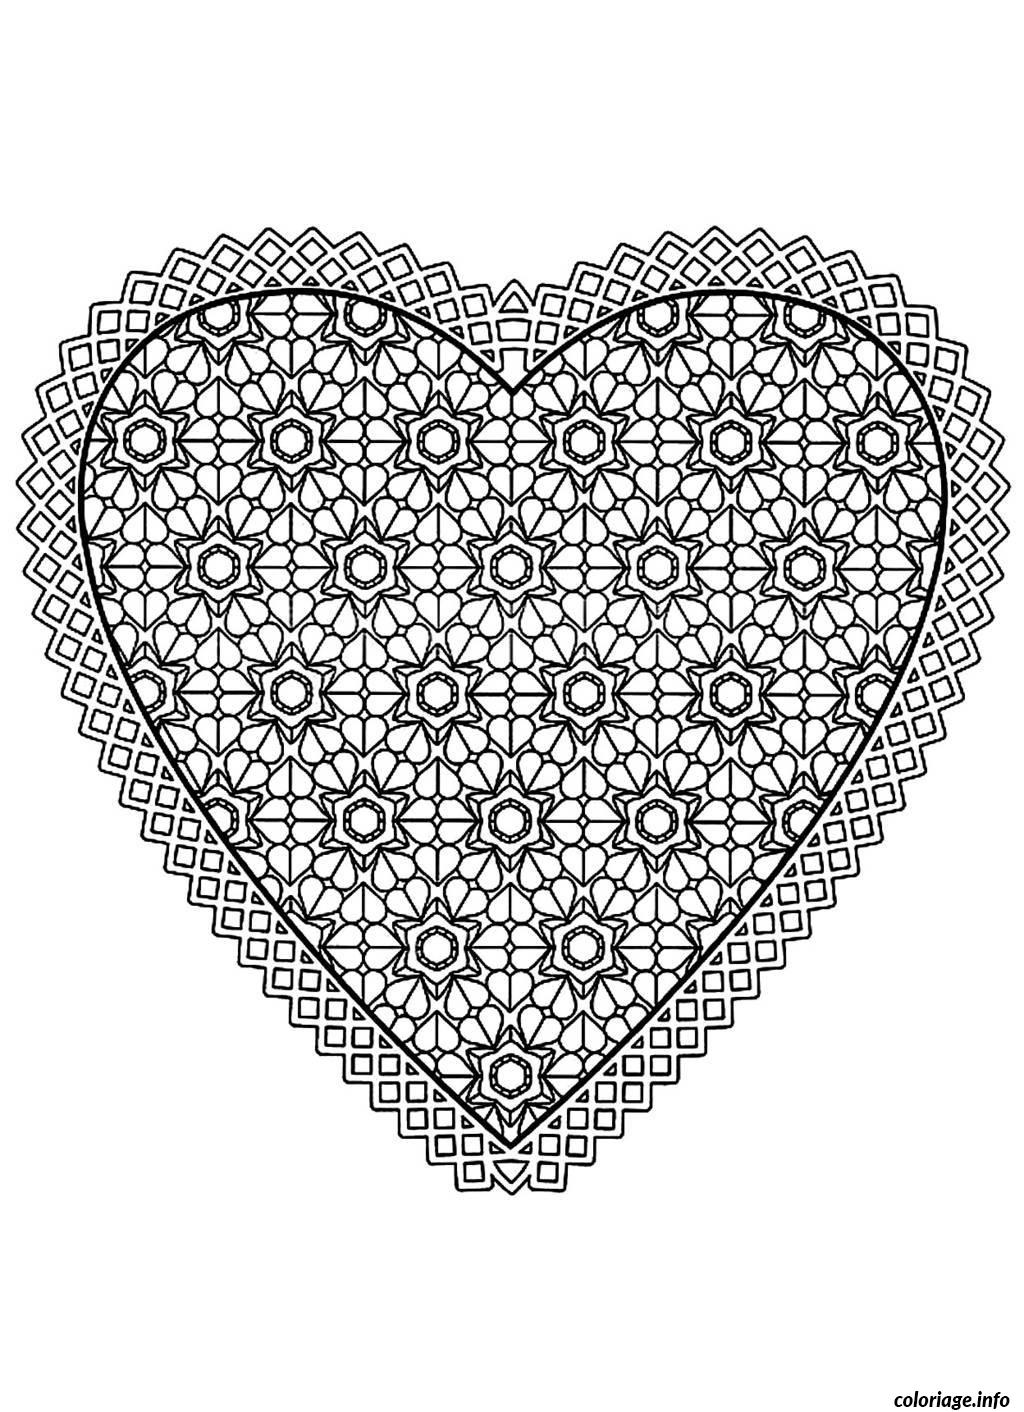 1451189319coloring free mandala difficult adult to print heart%20